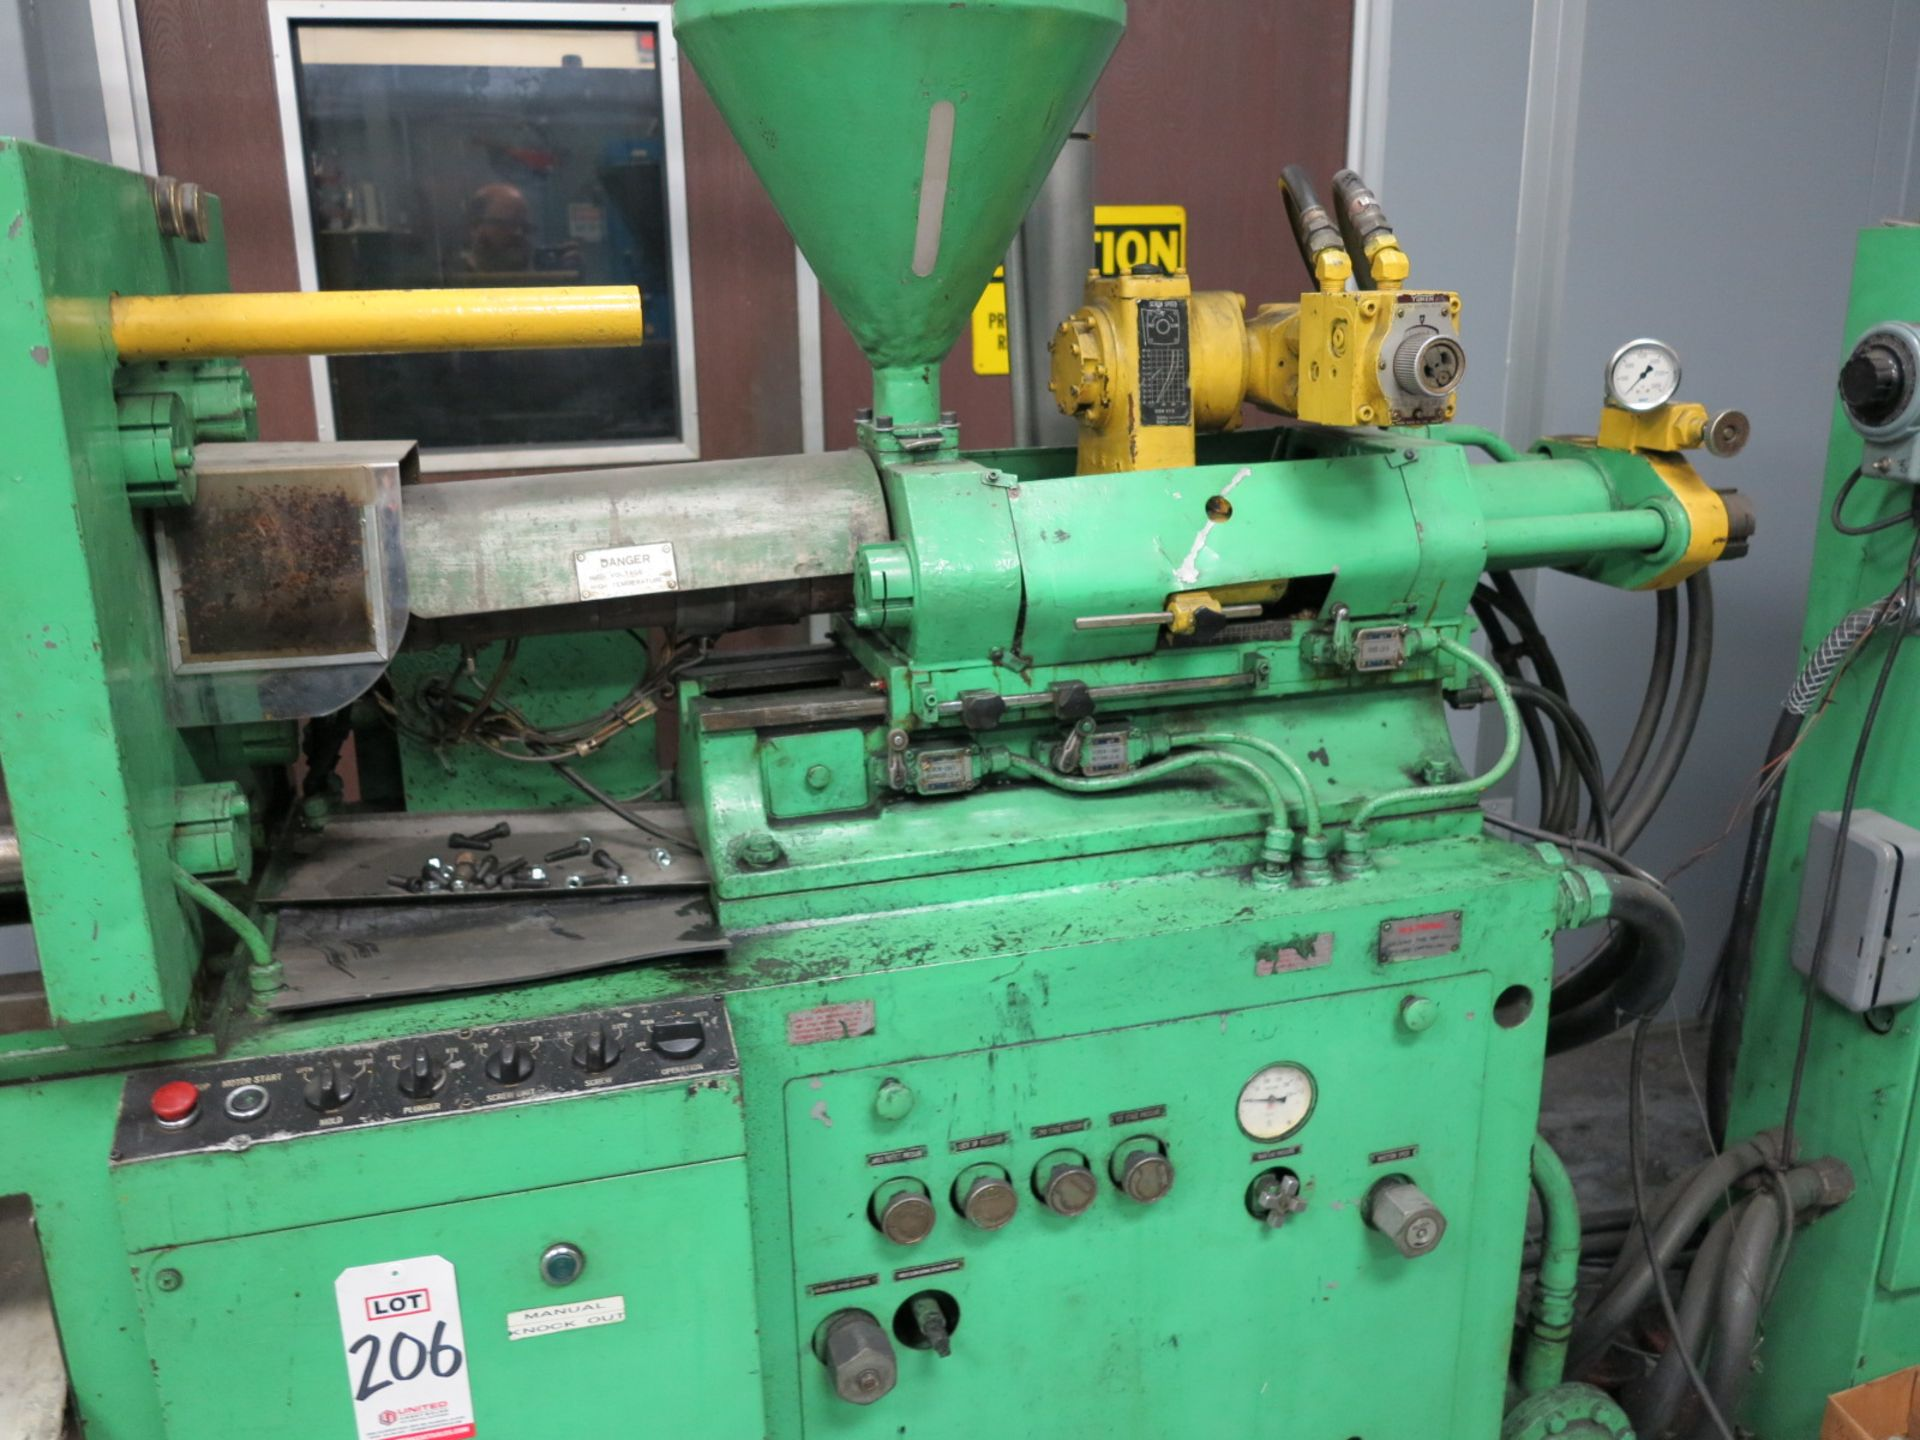 Lot 206 - KAWAGUCHI 40-TON PLASTIC INJECTION MOLDING MACHINE, MODEL KC-40, S/N K7-171562, SHOT VOLUME: 4.0 INC